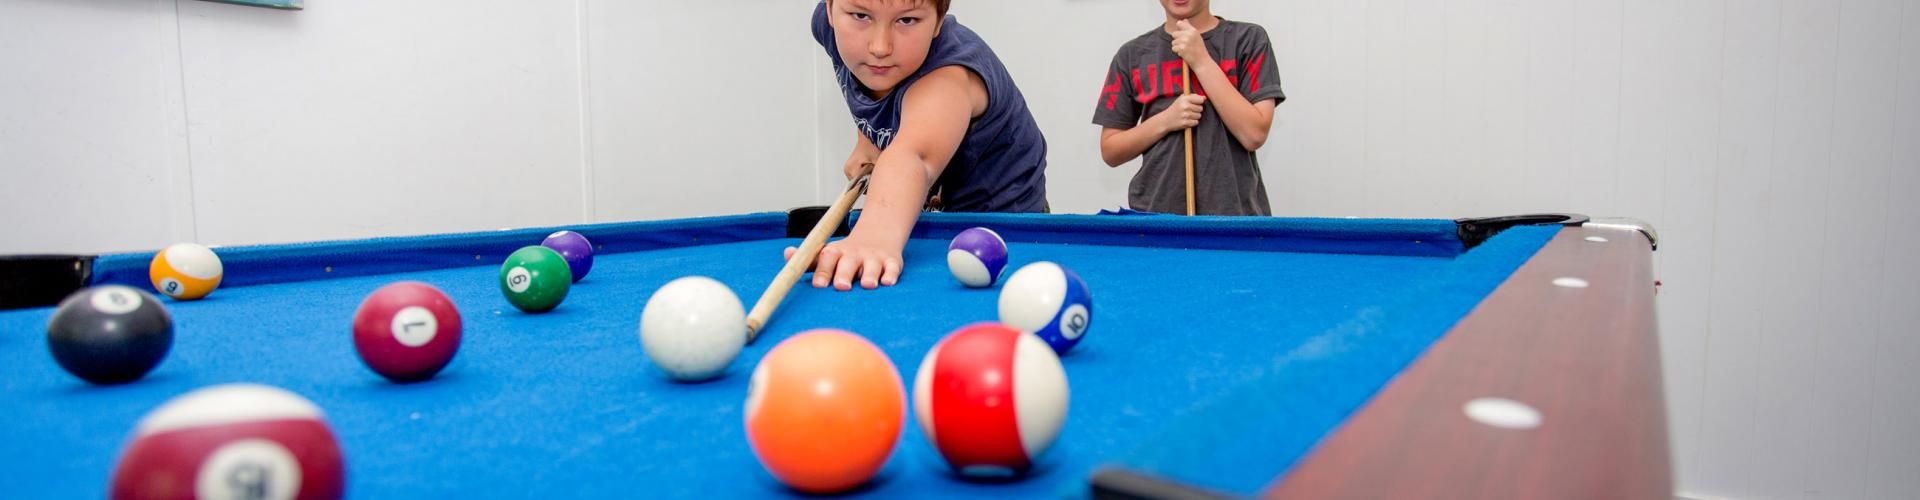 BIG4 Shepparton Park Lane Holiday Park - Kids playing pool